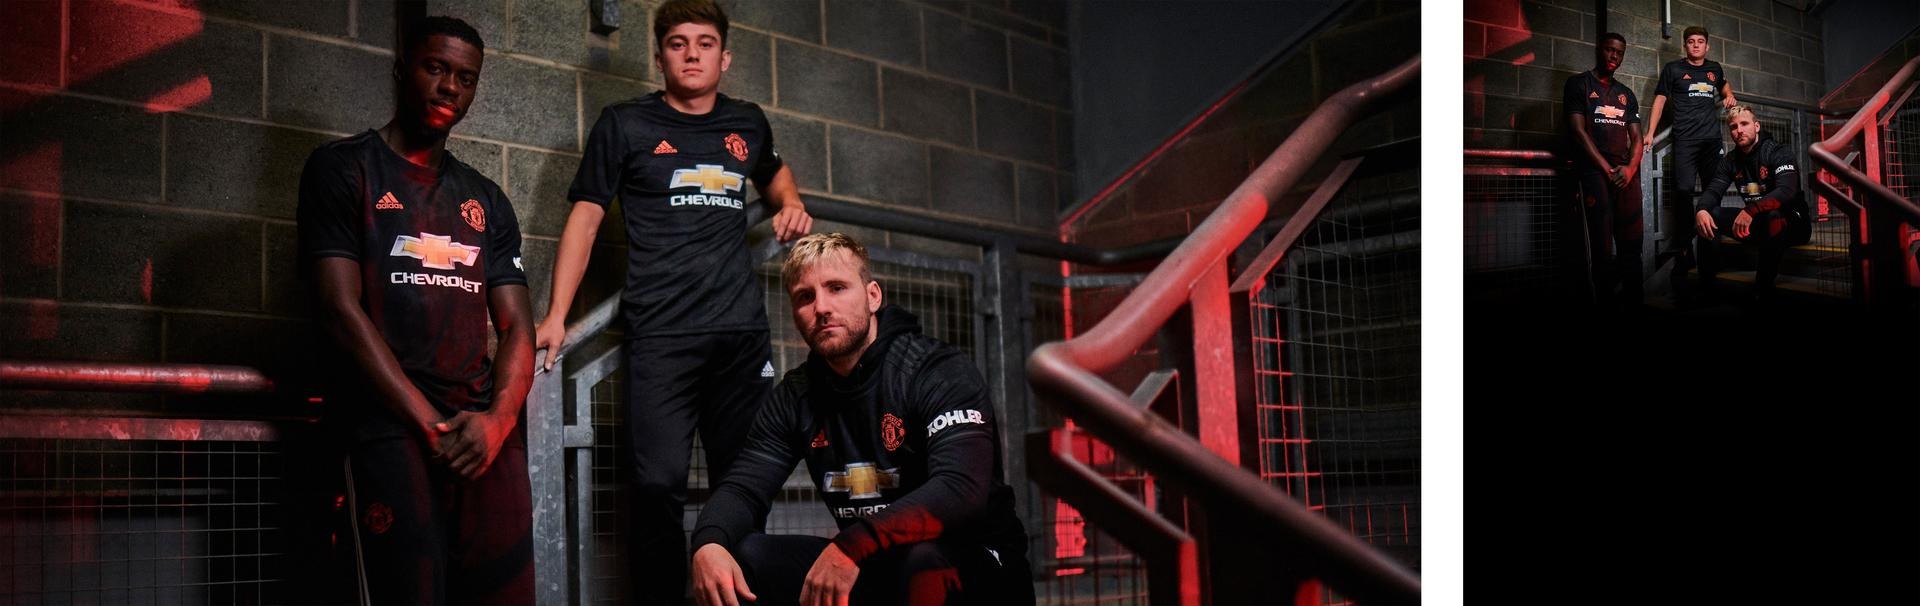 Manchester United players model the new adidas third kit for 2019/20